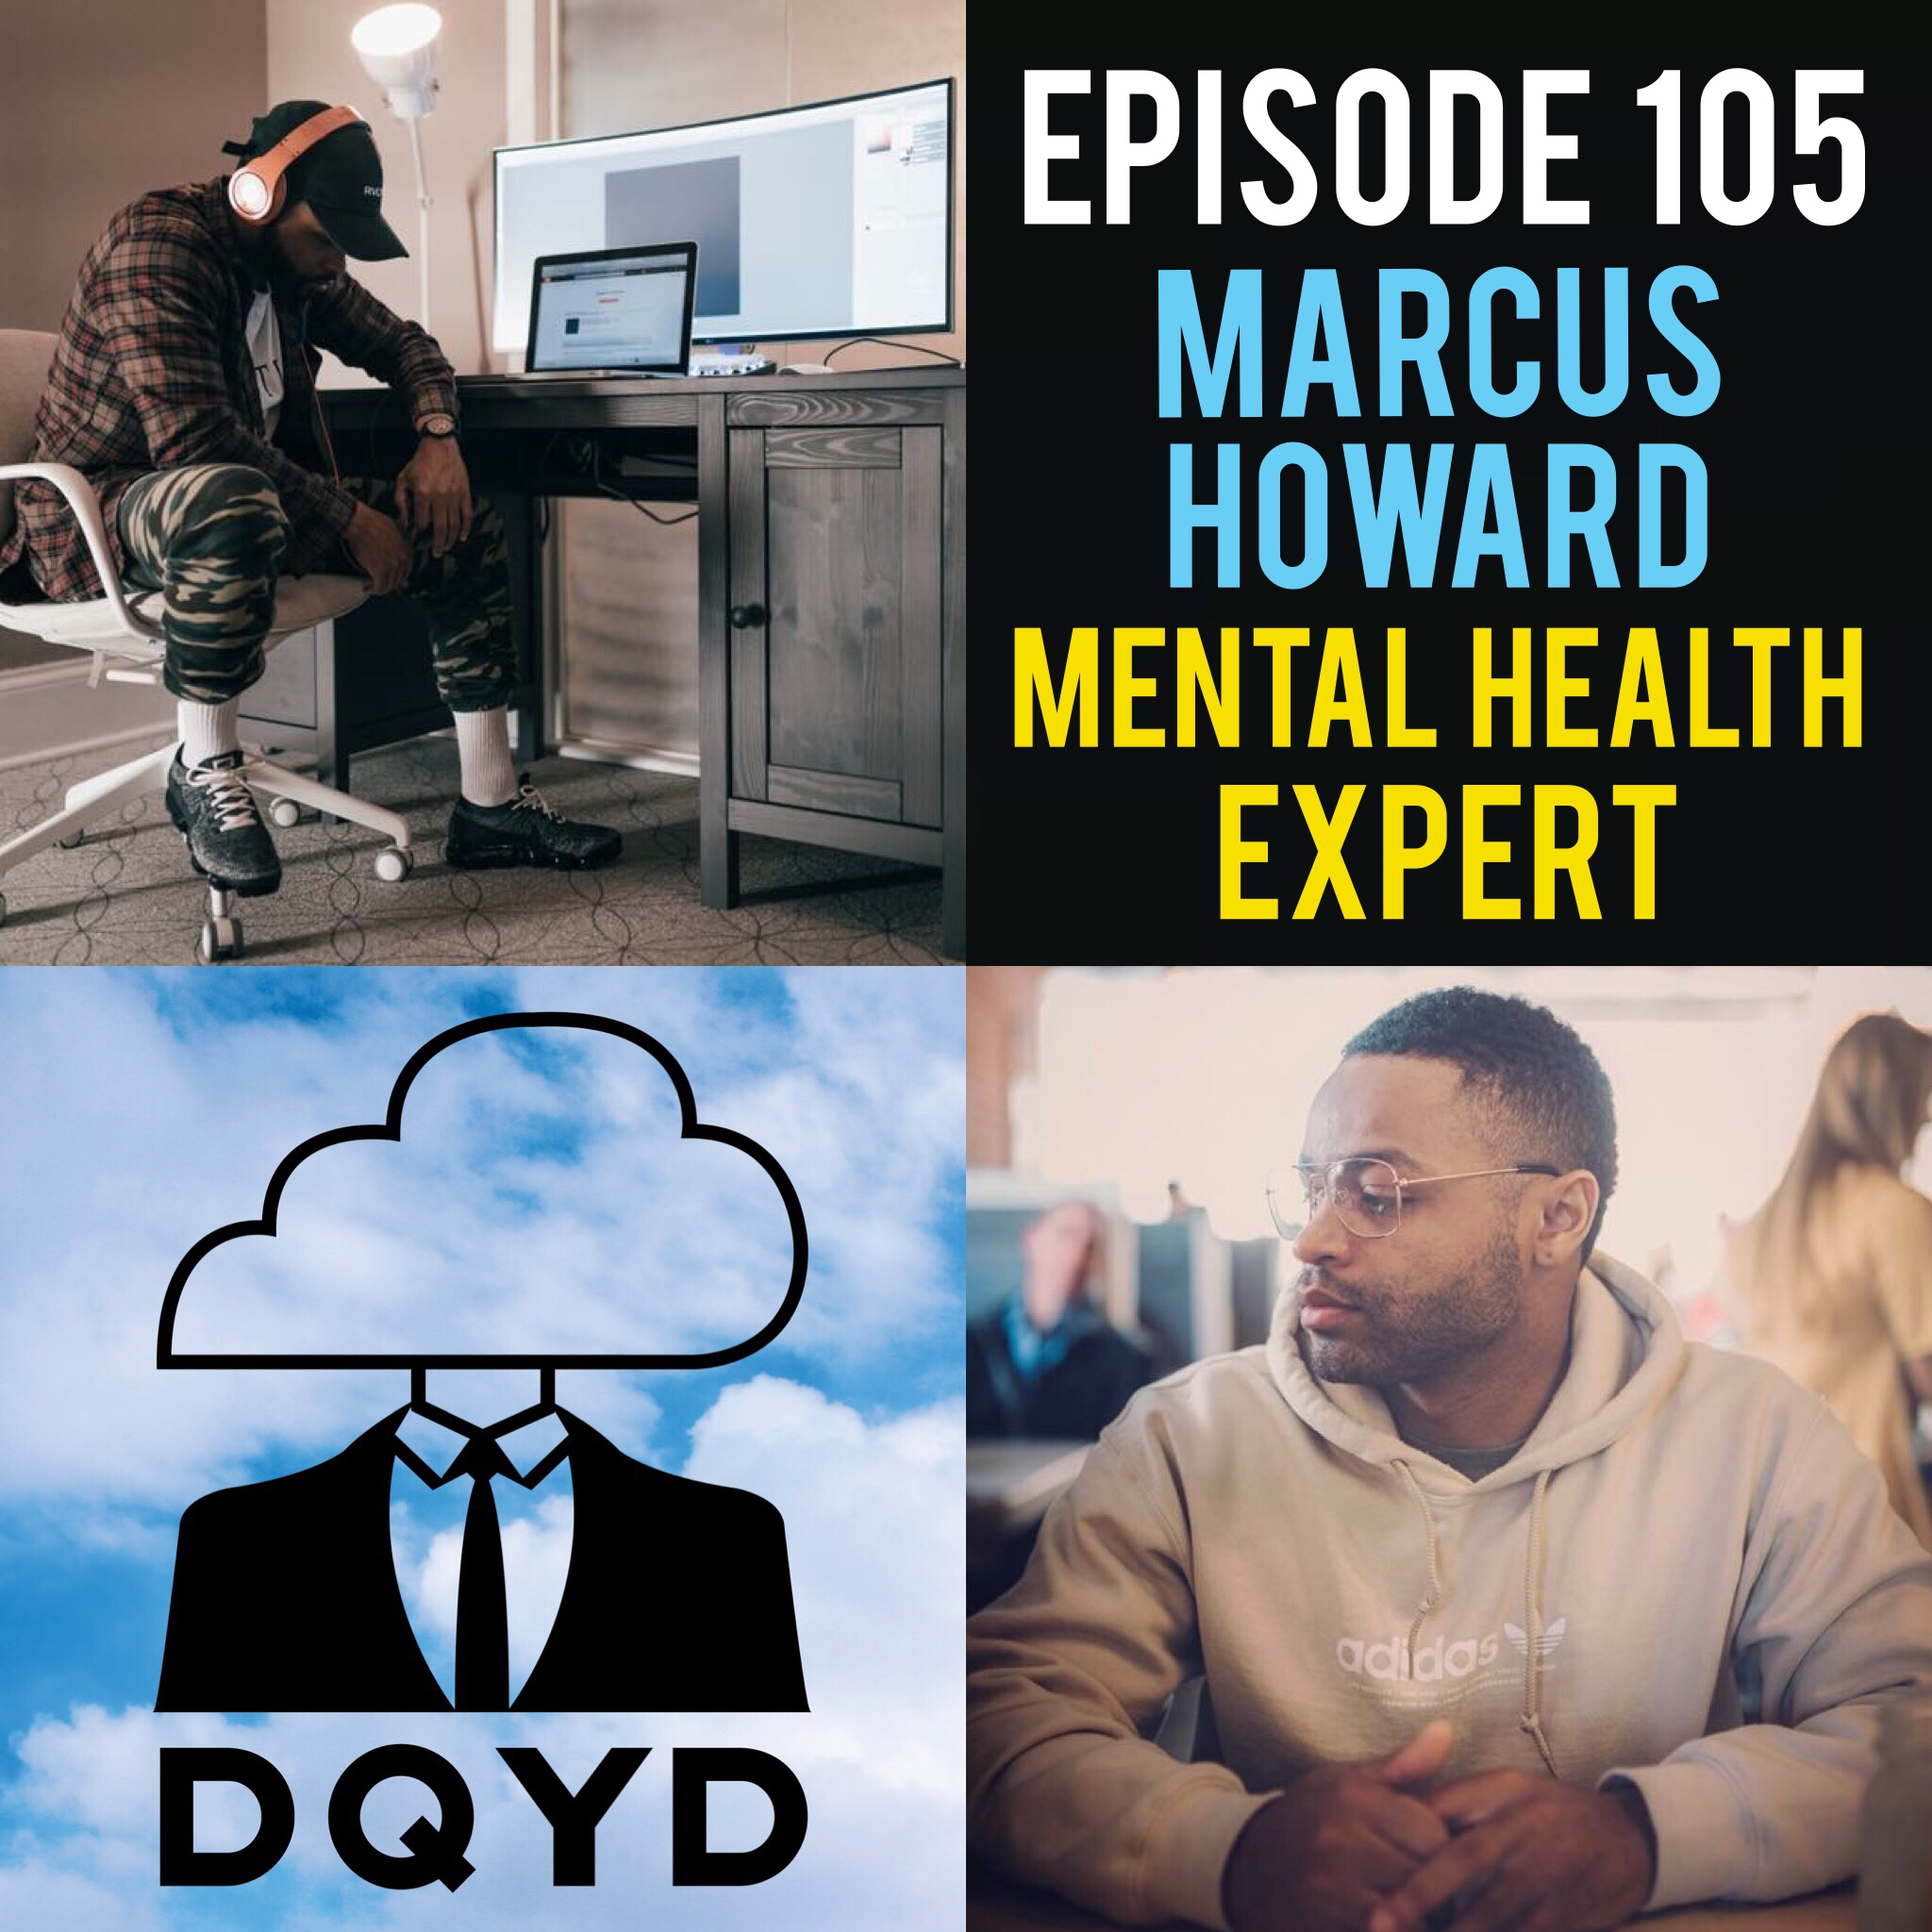 """Episode 105 with Mental Health Expert: Marcus Howard! From hosting several podcasts focused on mental health to working various occupations in the field, Marcus has made it his life's mission to assist those having mental health issues. He has gathered academic, professional and personal experience to develop ways to help cope day in and day out. Check out his very own podcast by going to:  https://soundcloud.com/user-353344268/mindful-recovery-podcast-with-marcus-howard-episode-38-drugs-addiction   Song of the week is """"Donor"""" by Ki Redd. Check him out at https://soundcloud.com/getonki"""